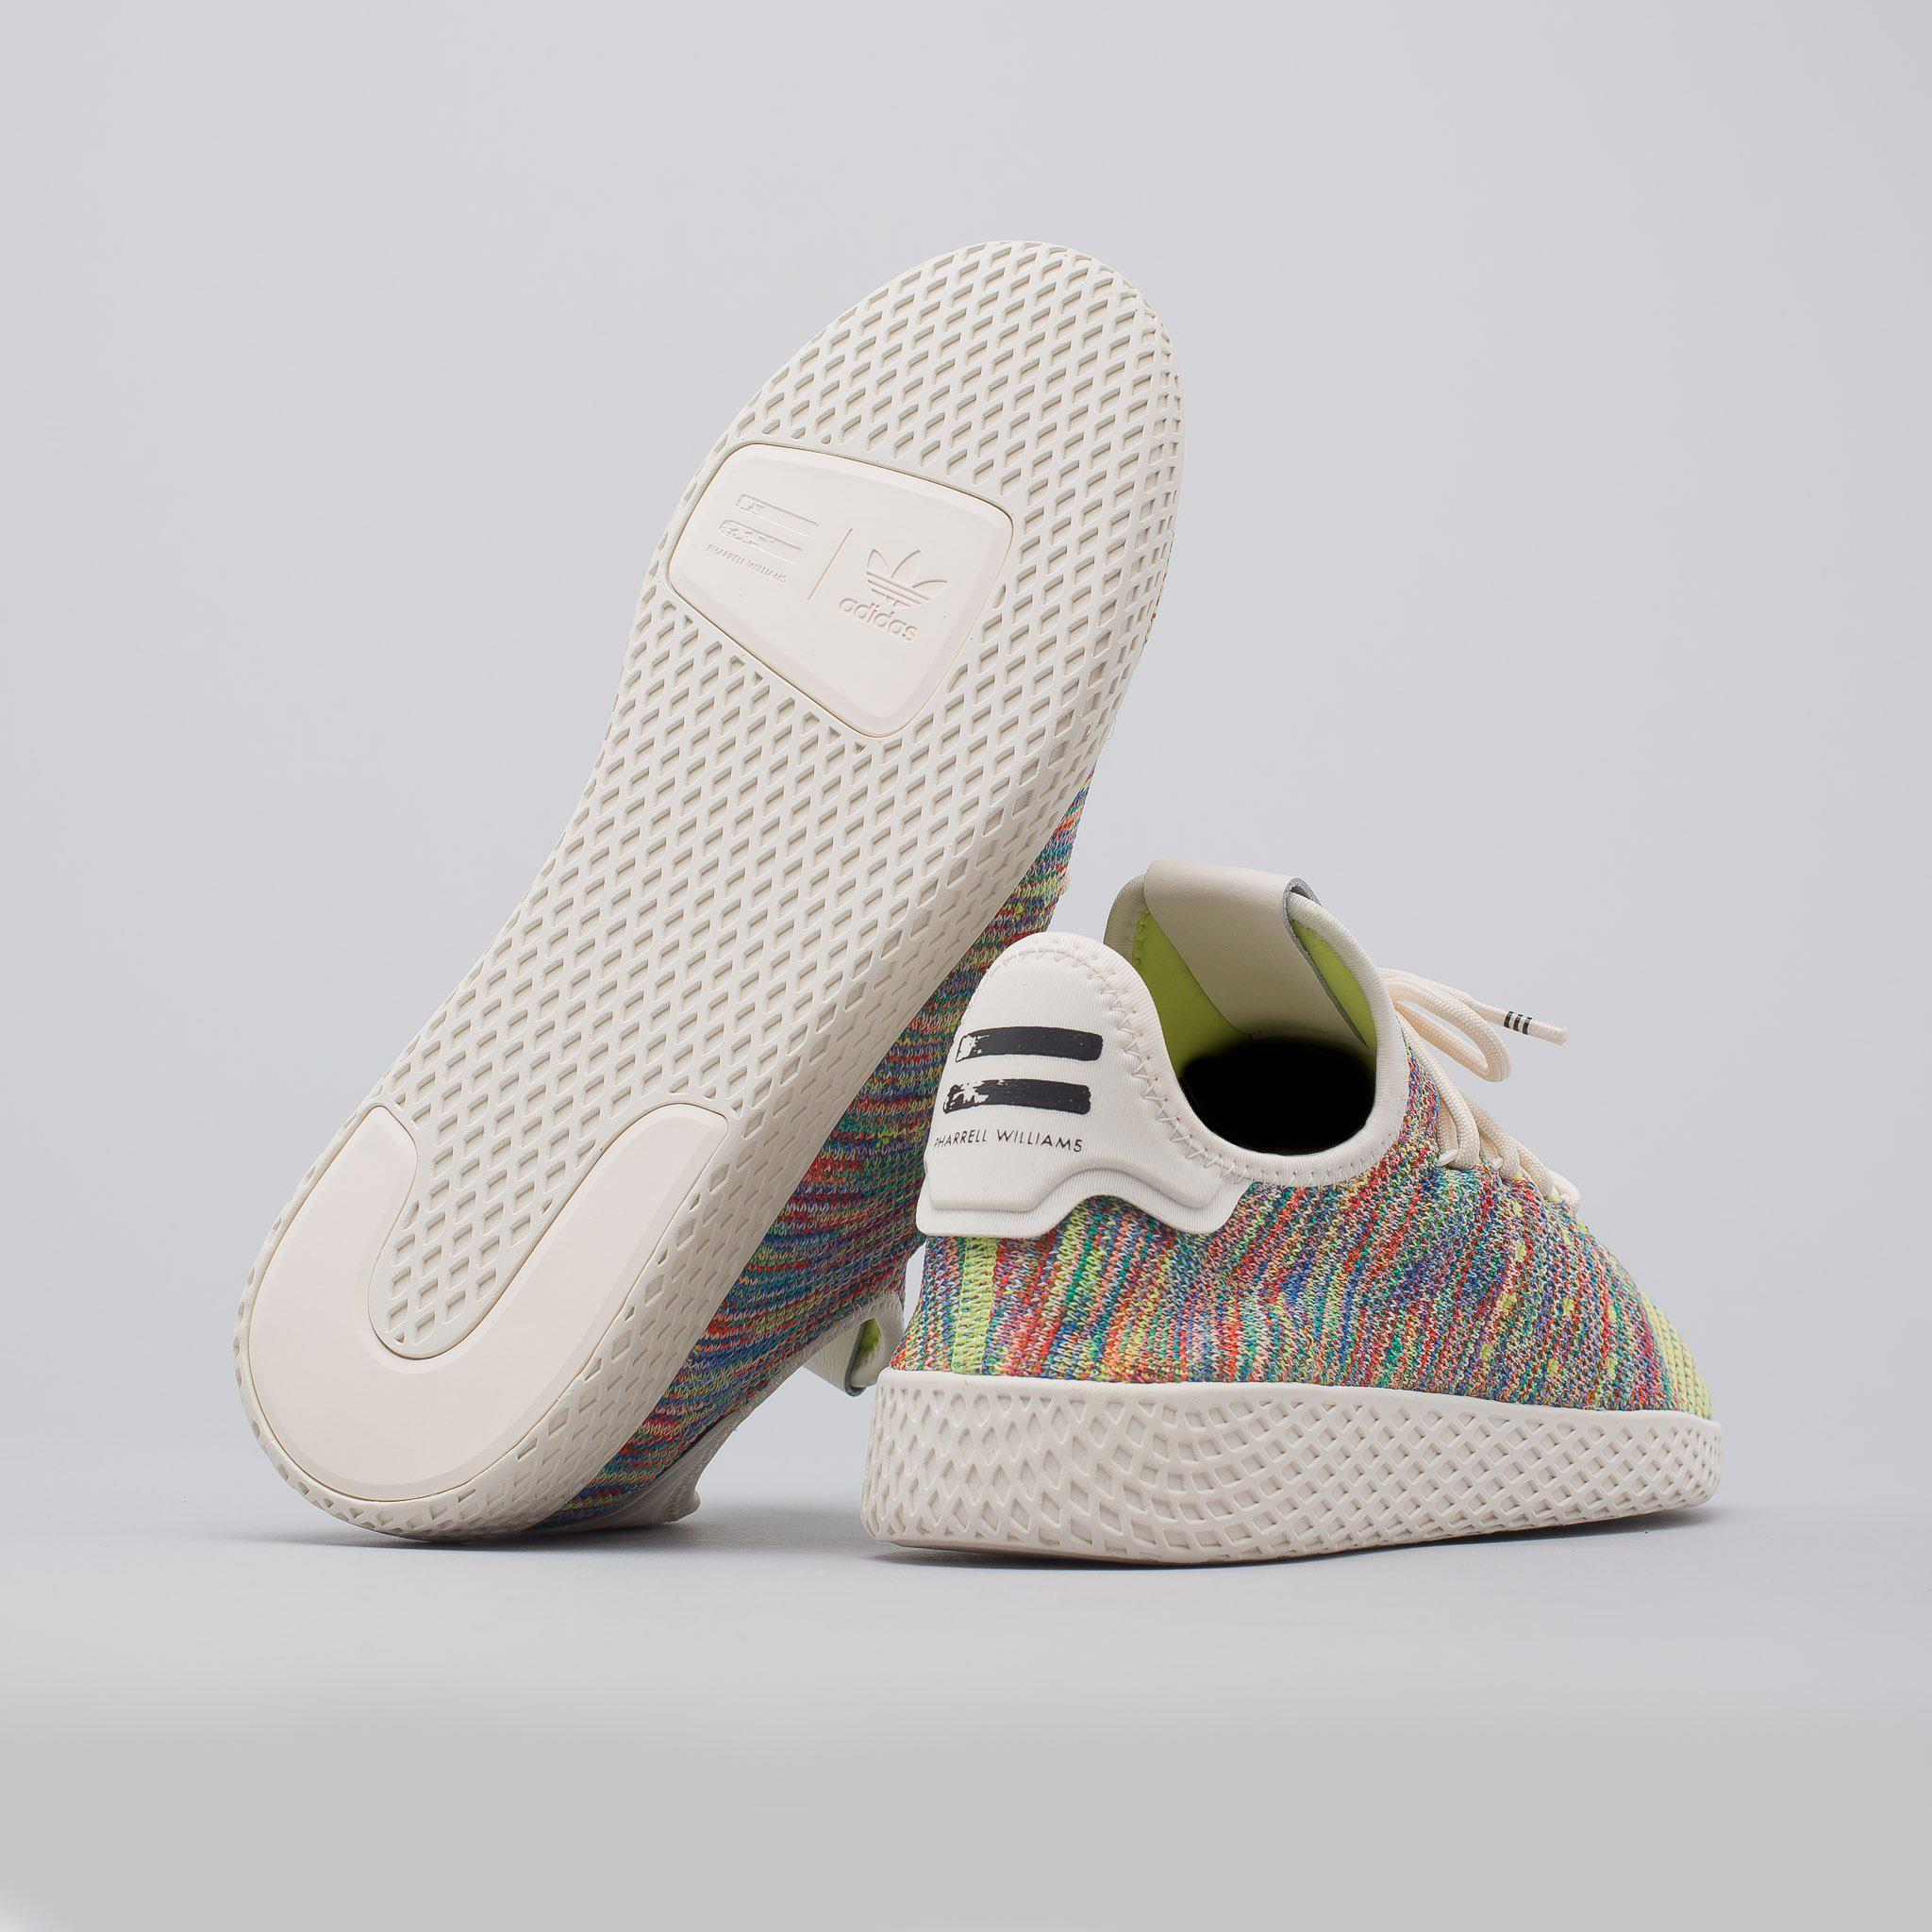 a6737c273 Lyst - adidas X Pharrell Williams Tennis Hu Primeknit In Multi for Men